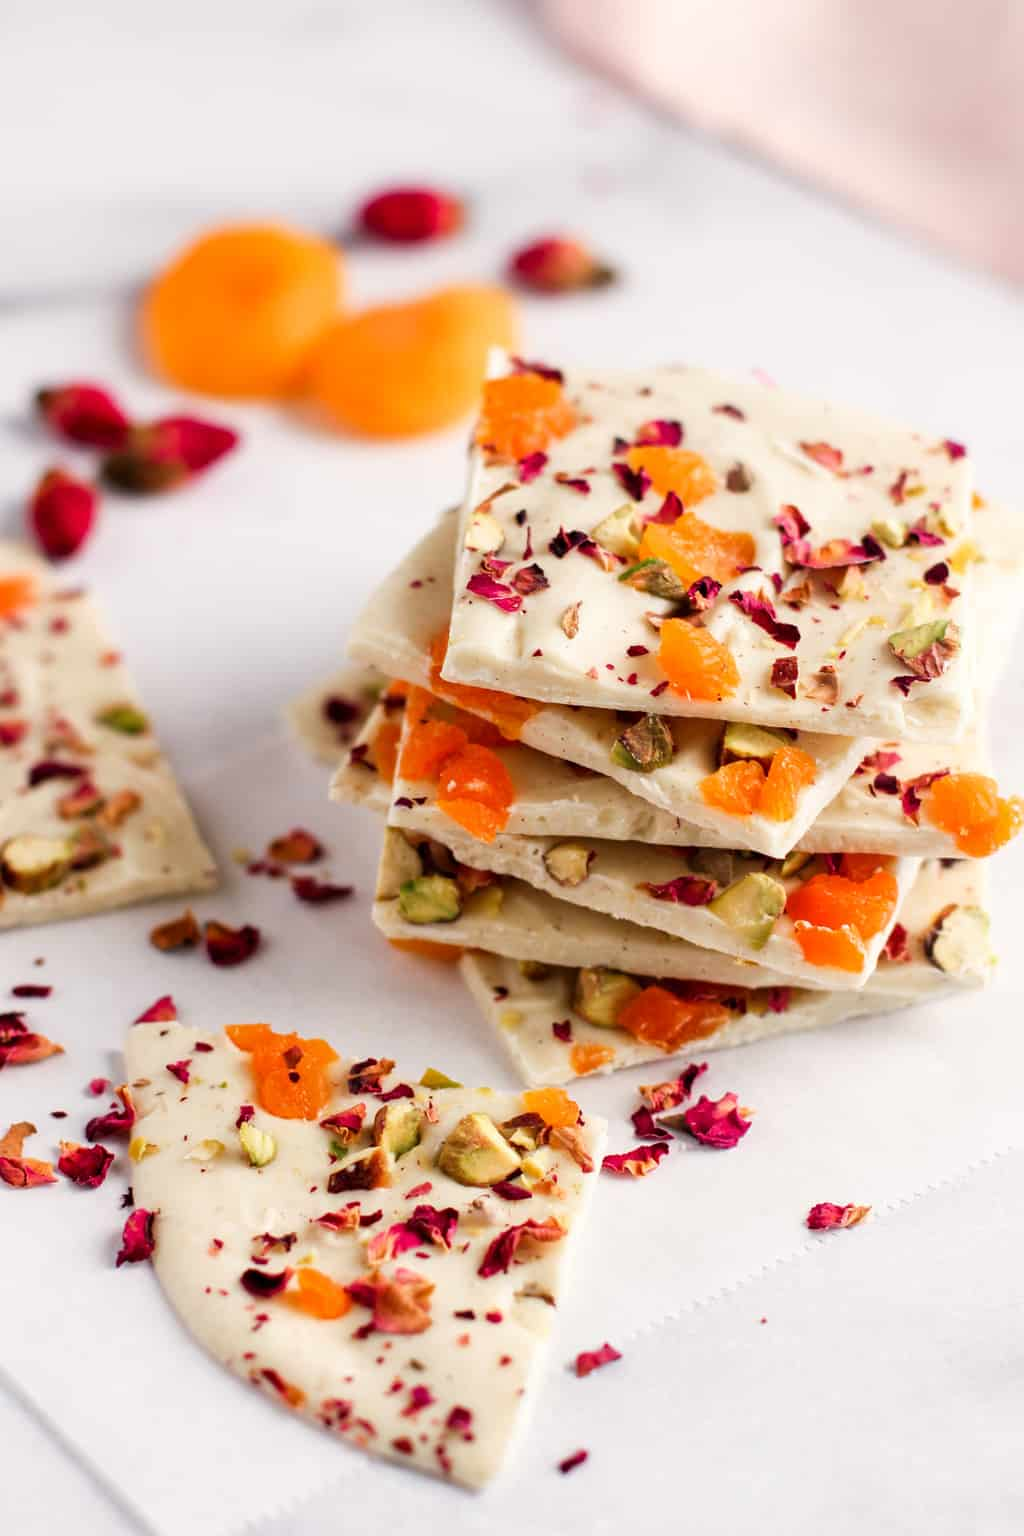 white chocolate bark with cardamom, pistachios, apricots and rose petals